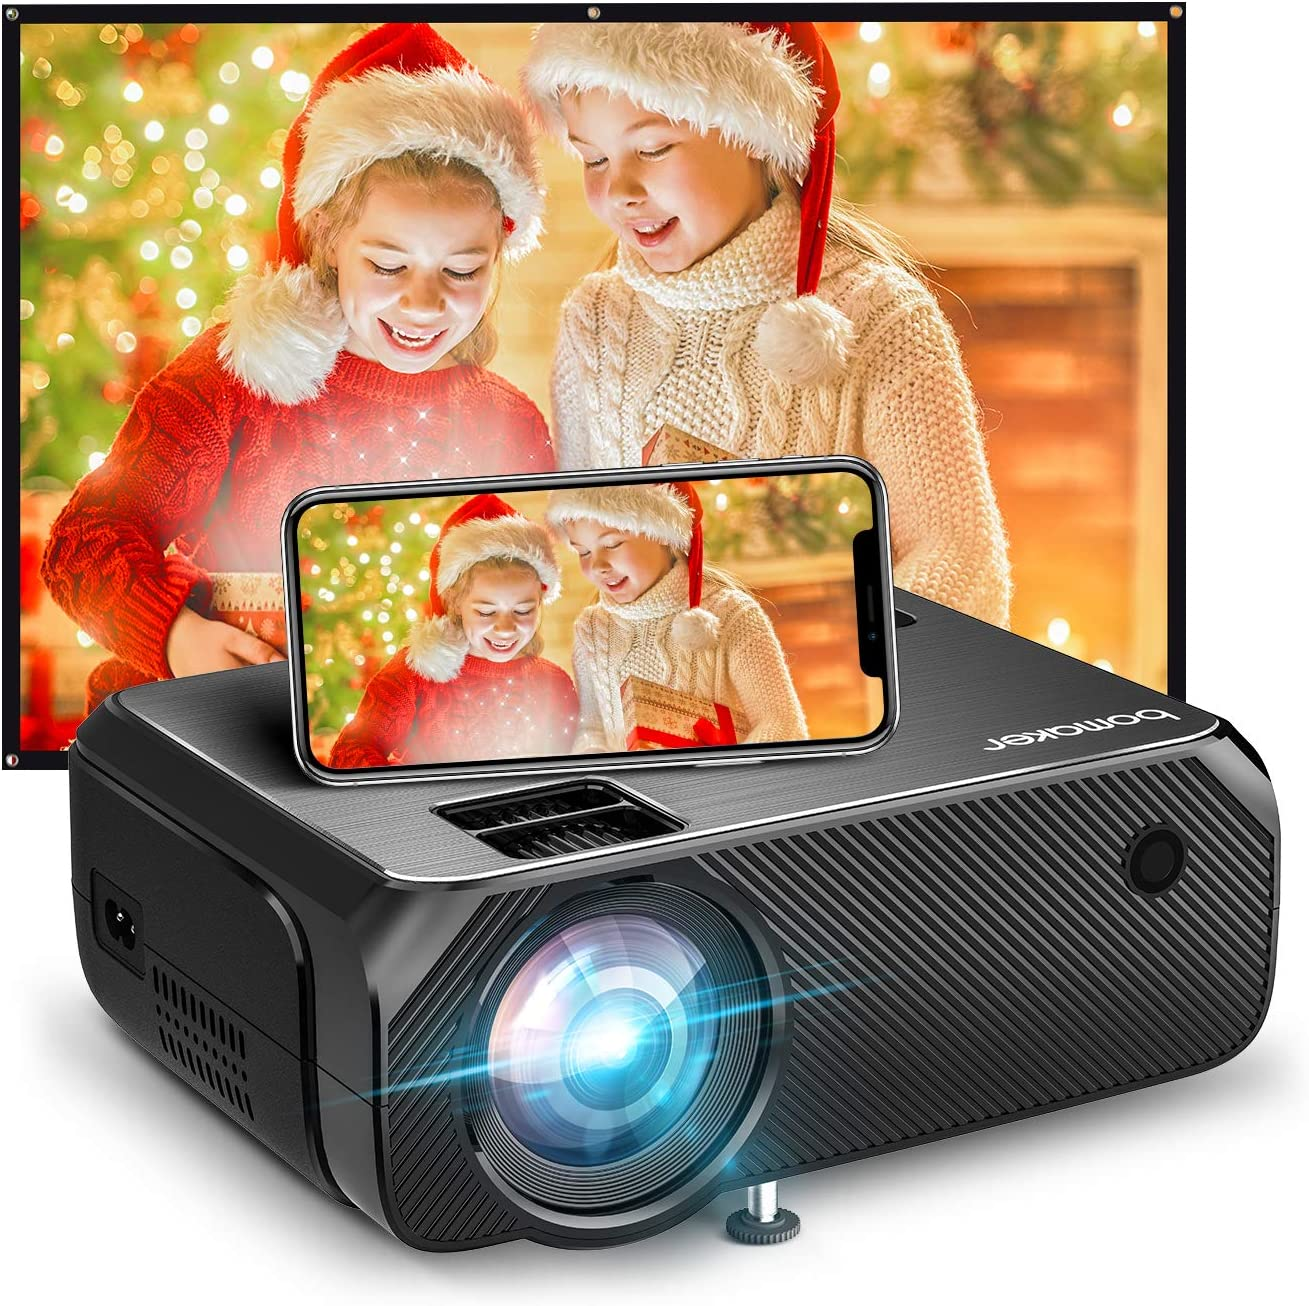 Bomaker Wi-Fi Mini Projector, Portable Projector for Outdoor Movies, Outdoor Movie Projector, Wireless Mirroring, for iPhone/Android/PCs/Laptops/DVD Player/Windows